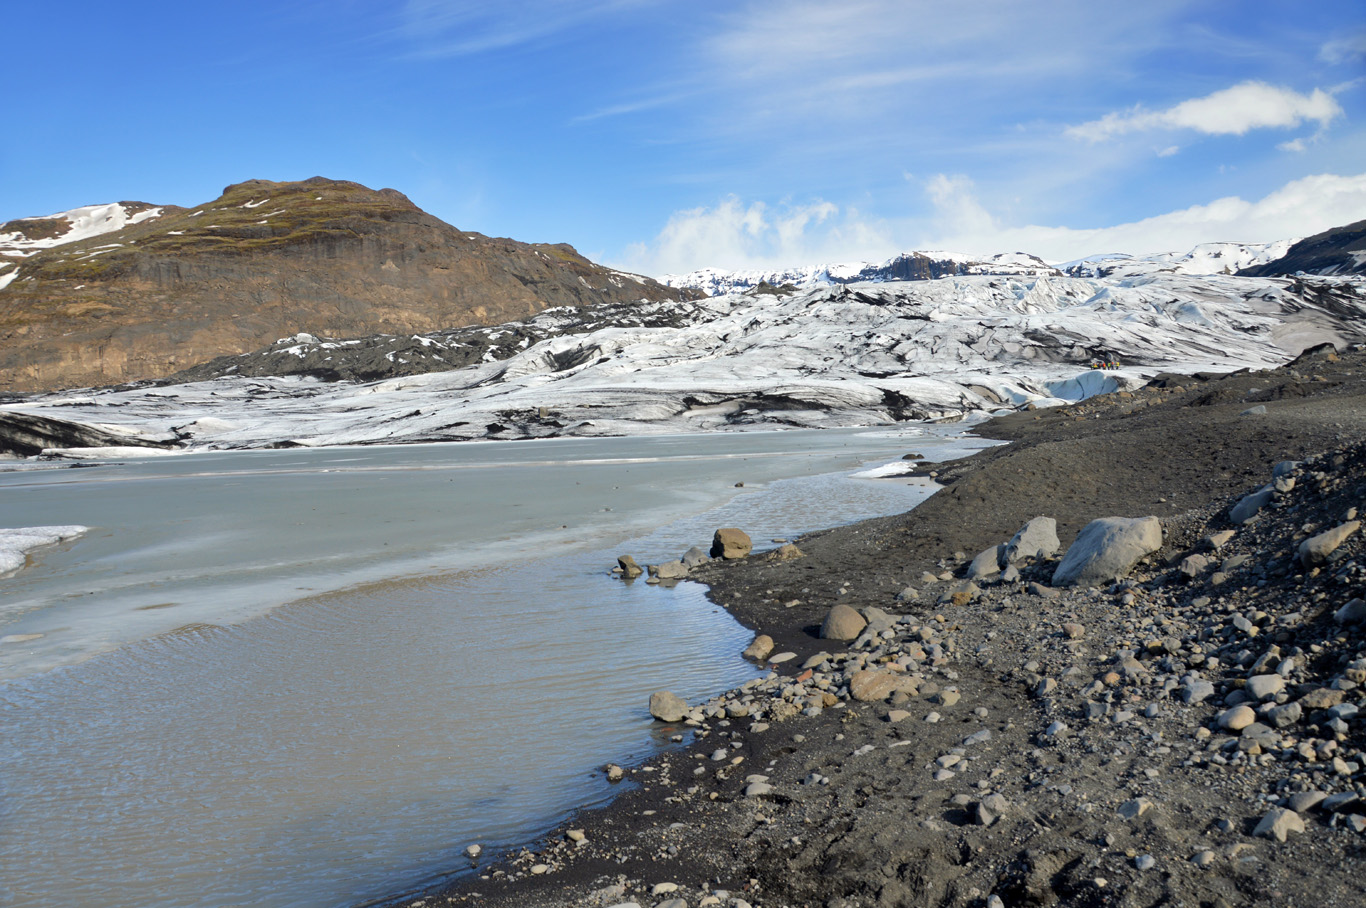 In front of the glacier